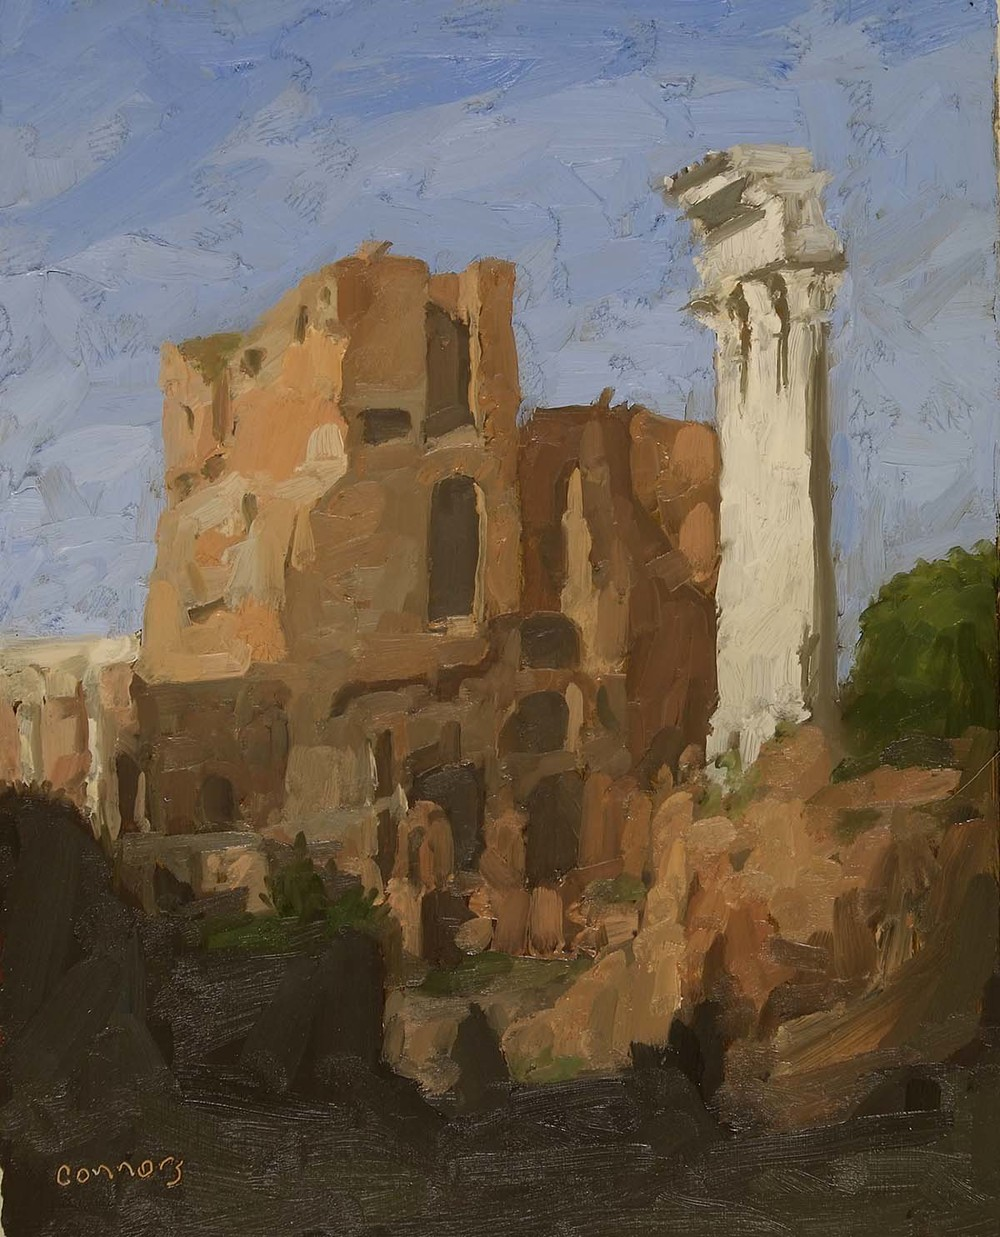 Roman Forum, North Entrance, 12 x 9.5 inches, oil on prepared paper